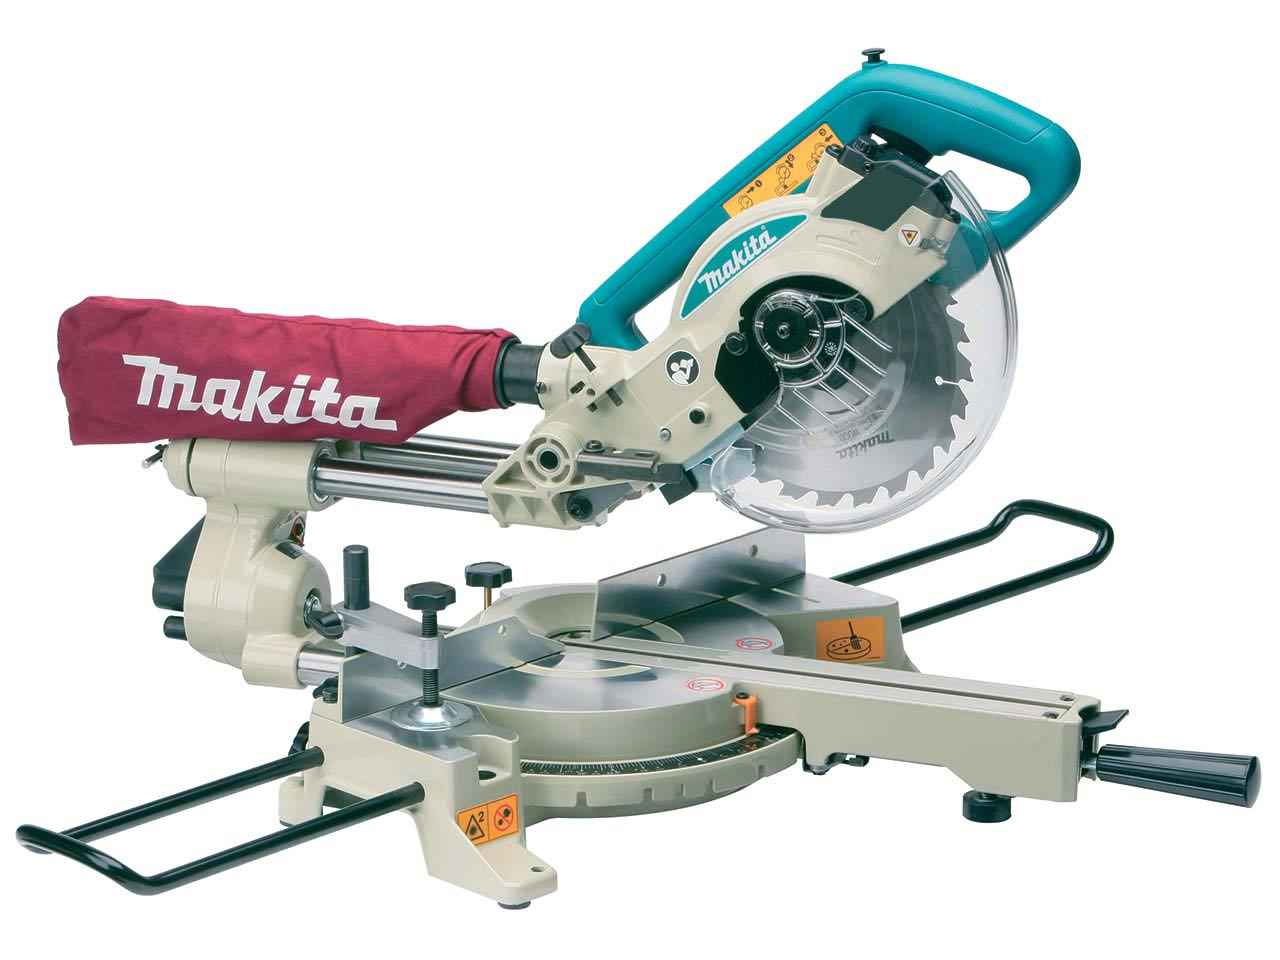 Makita LS0714X/2 190MM Mitre Saw with Stand 240V